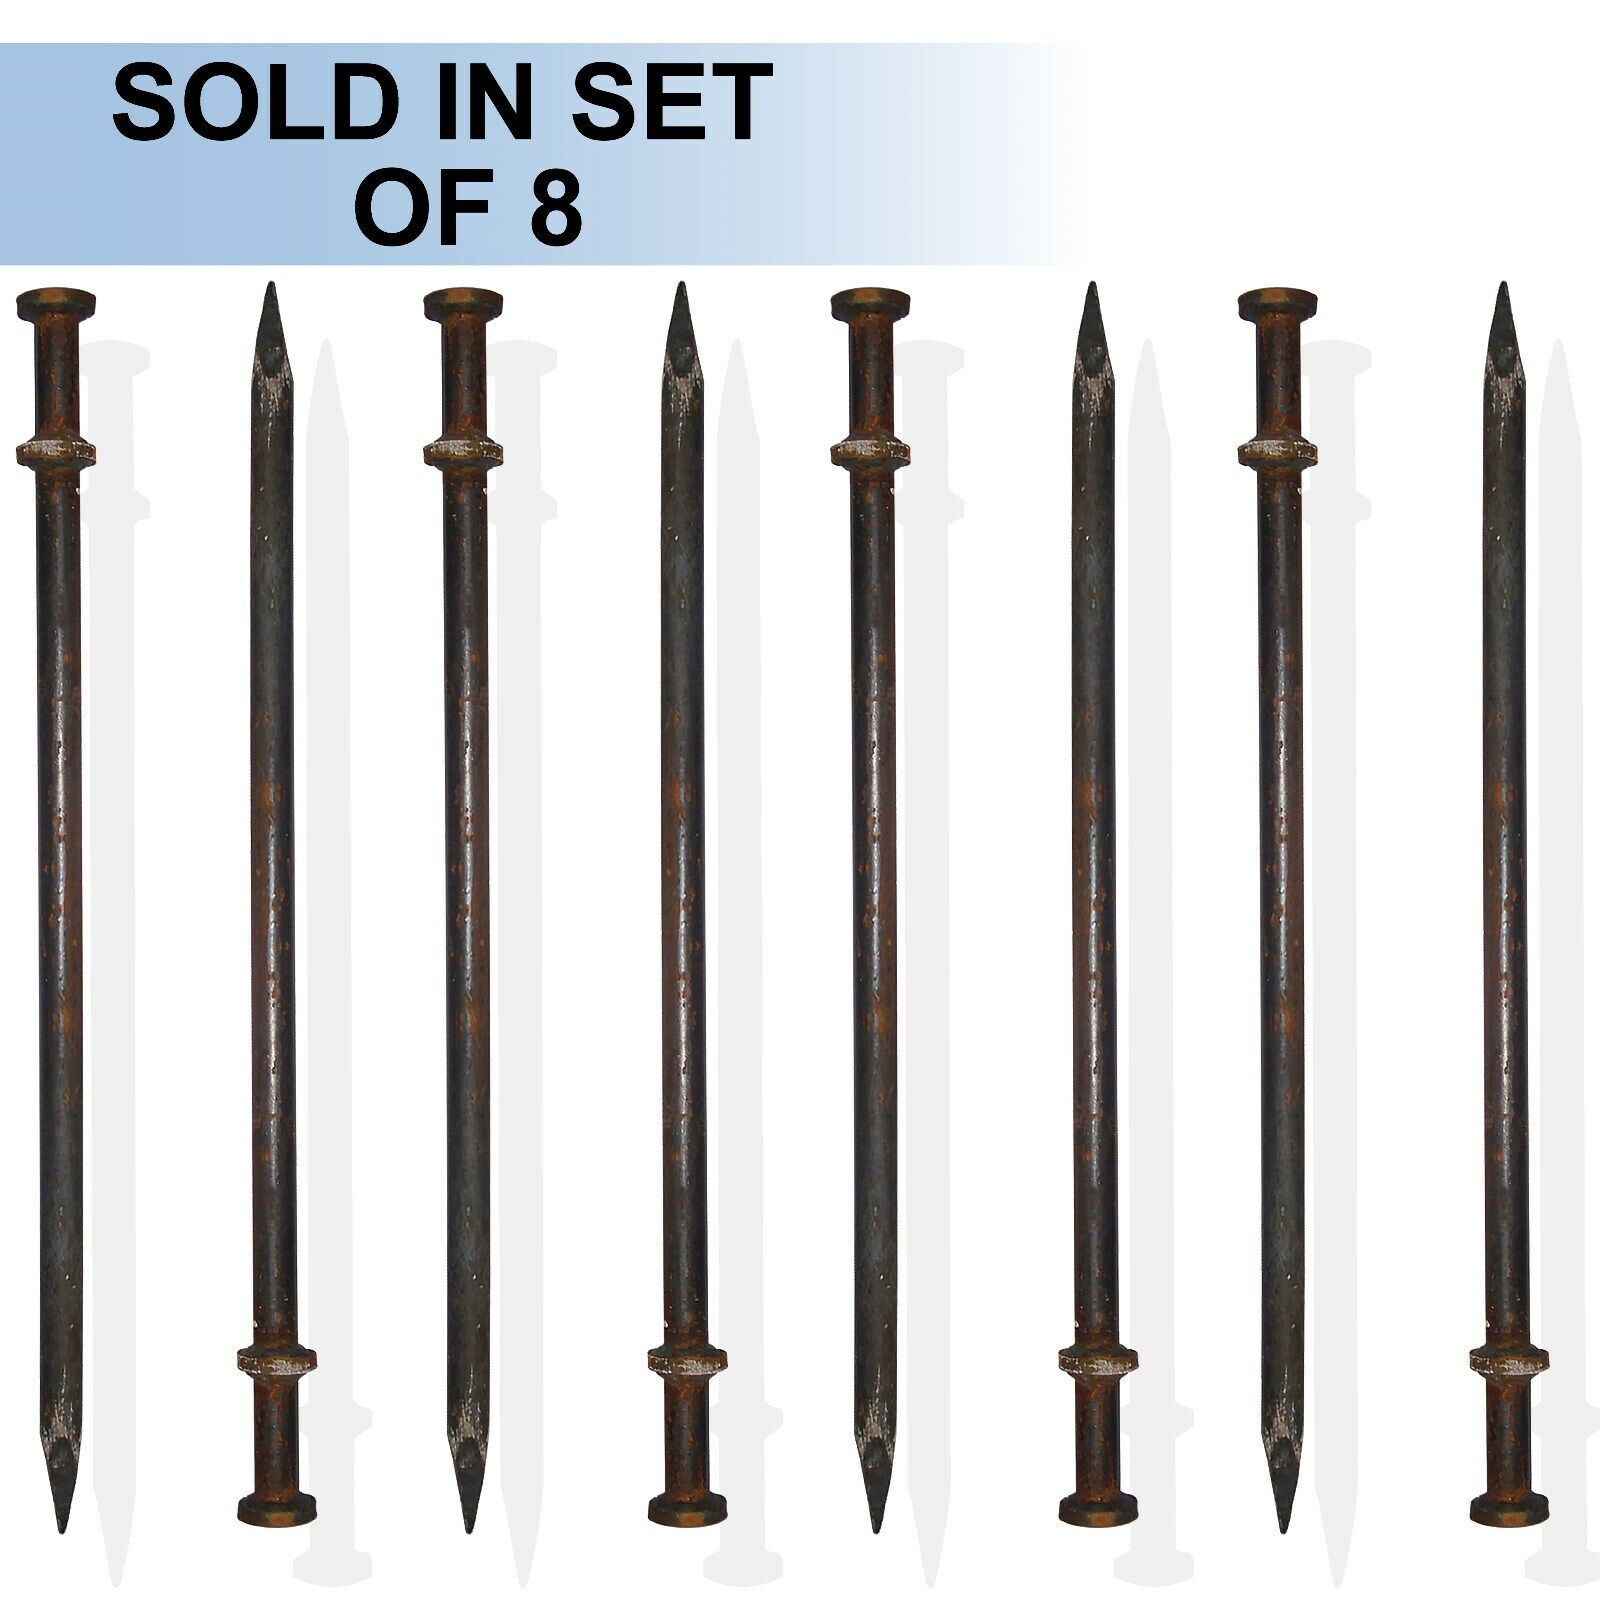 42  x 1  Double Head Tent Stake (Set of 8)  official quality